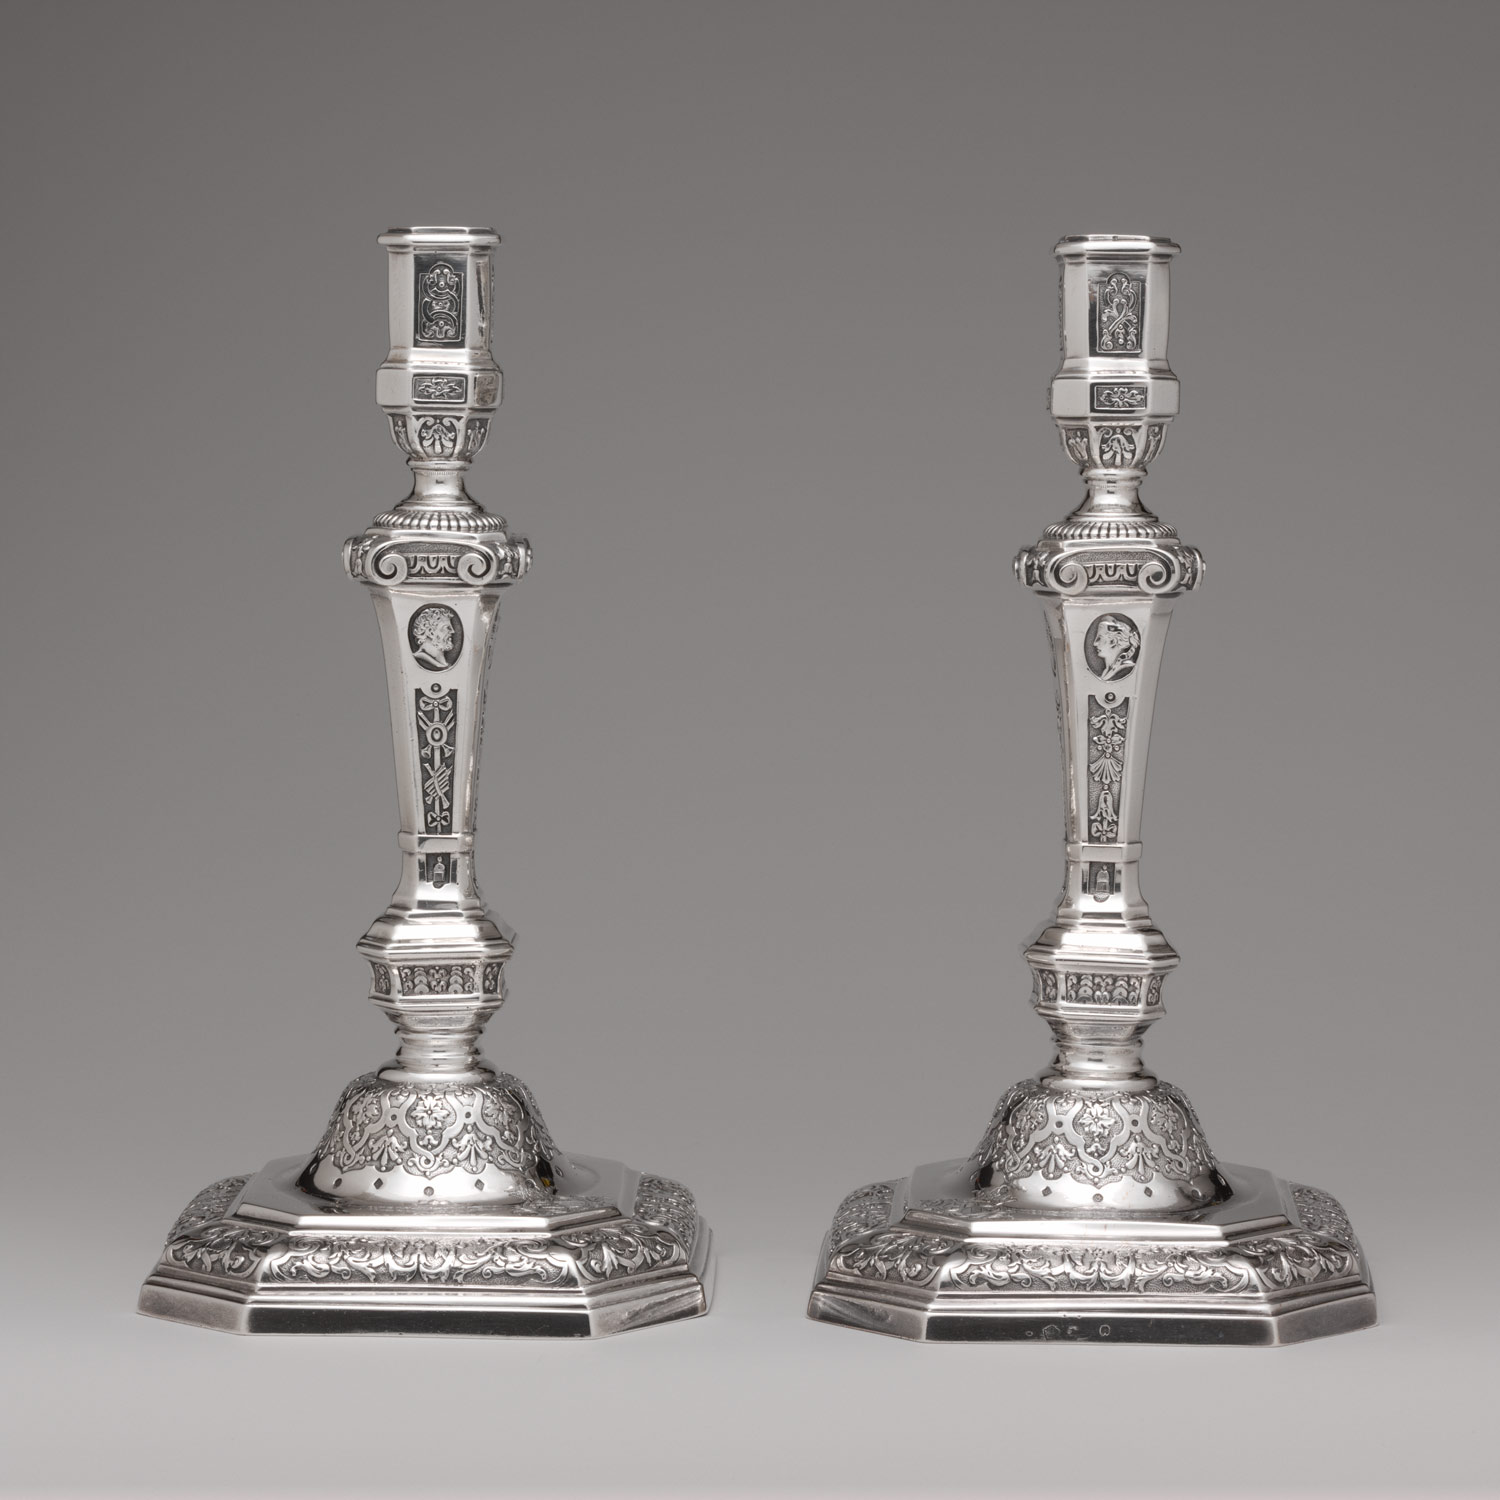 french silver in the seventeenth and eighteenth centuries essay fork fork middot pair of candlesticks